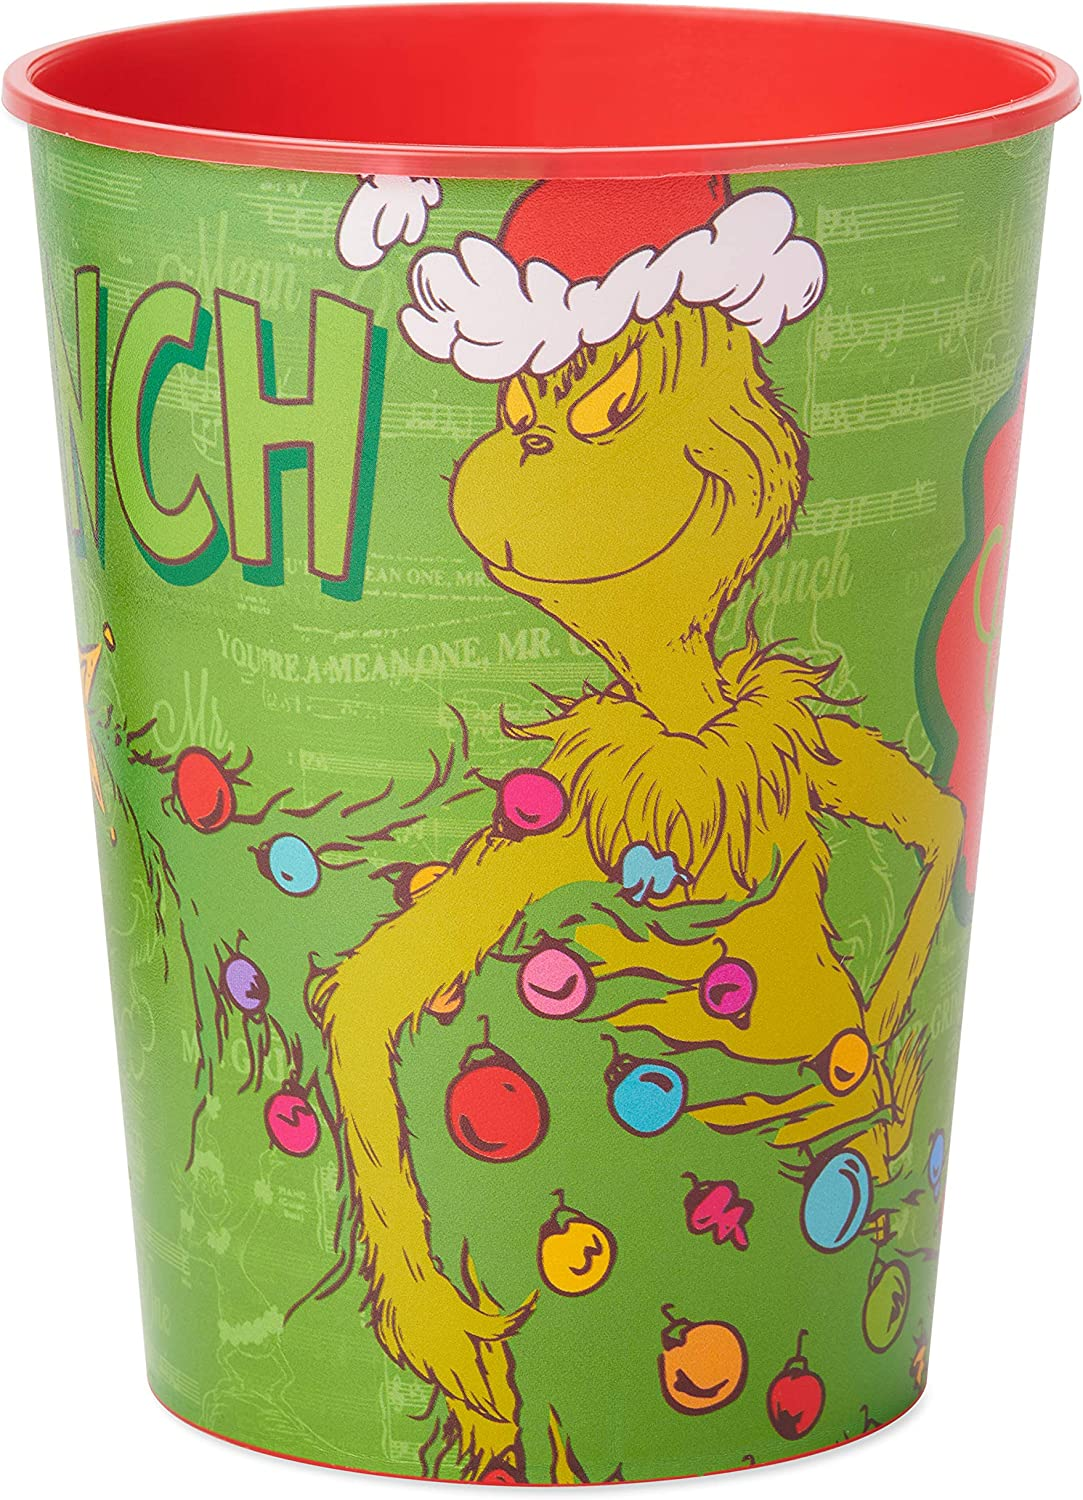 The Grinch American Greetings Plastic Christmas Cup 8-Count